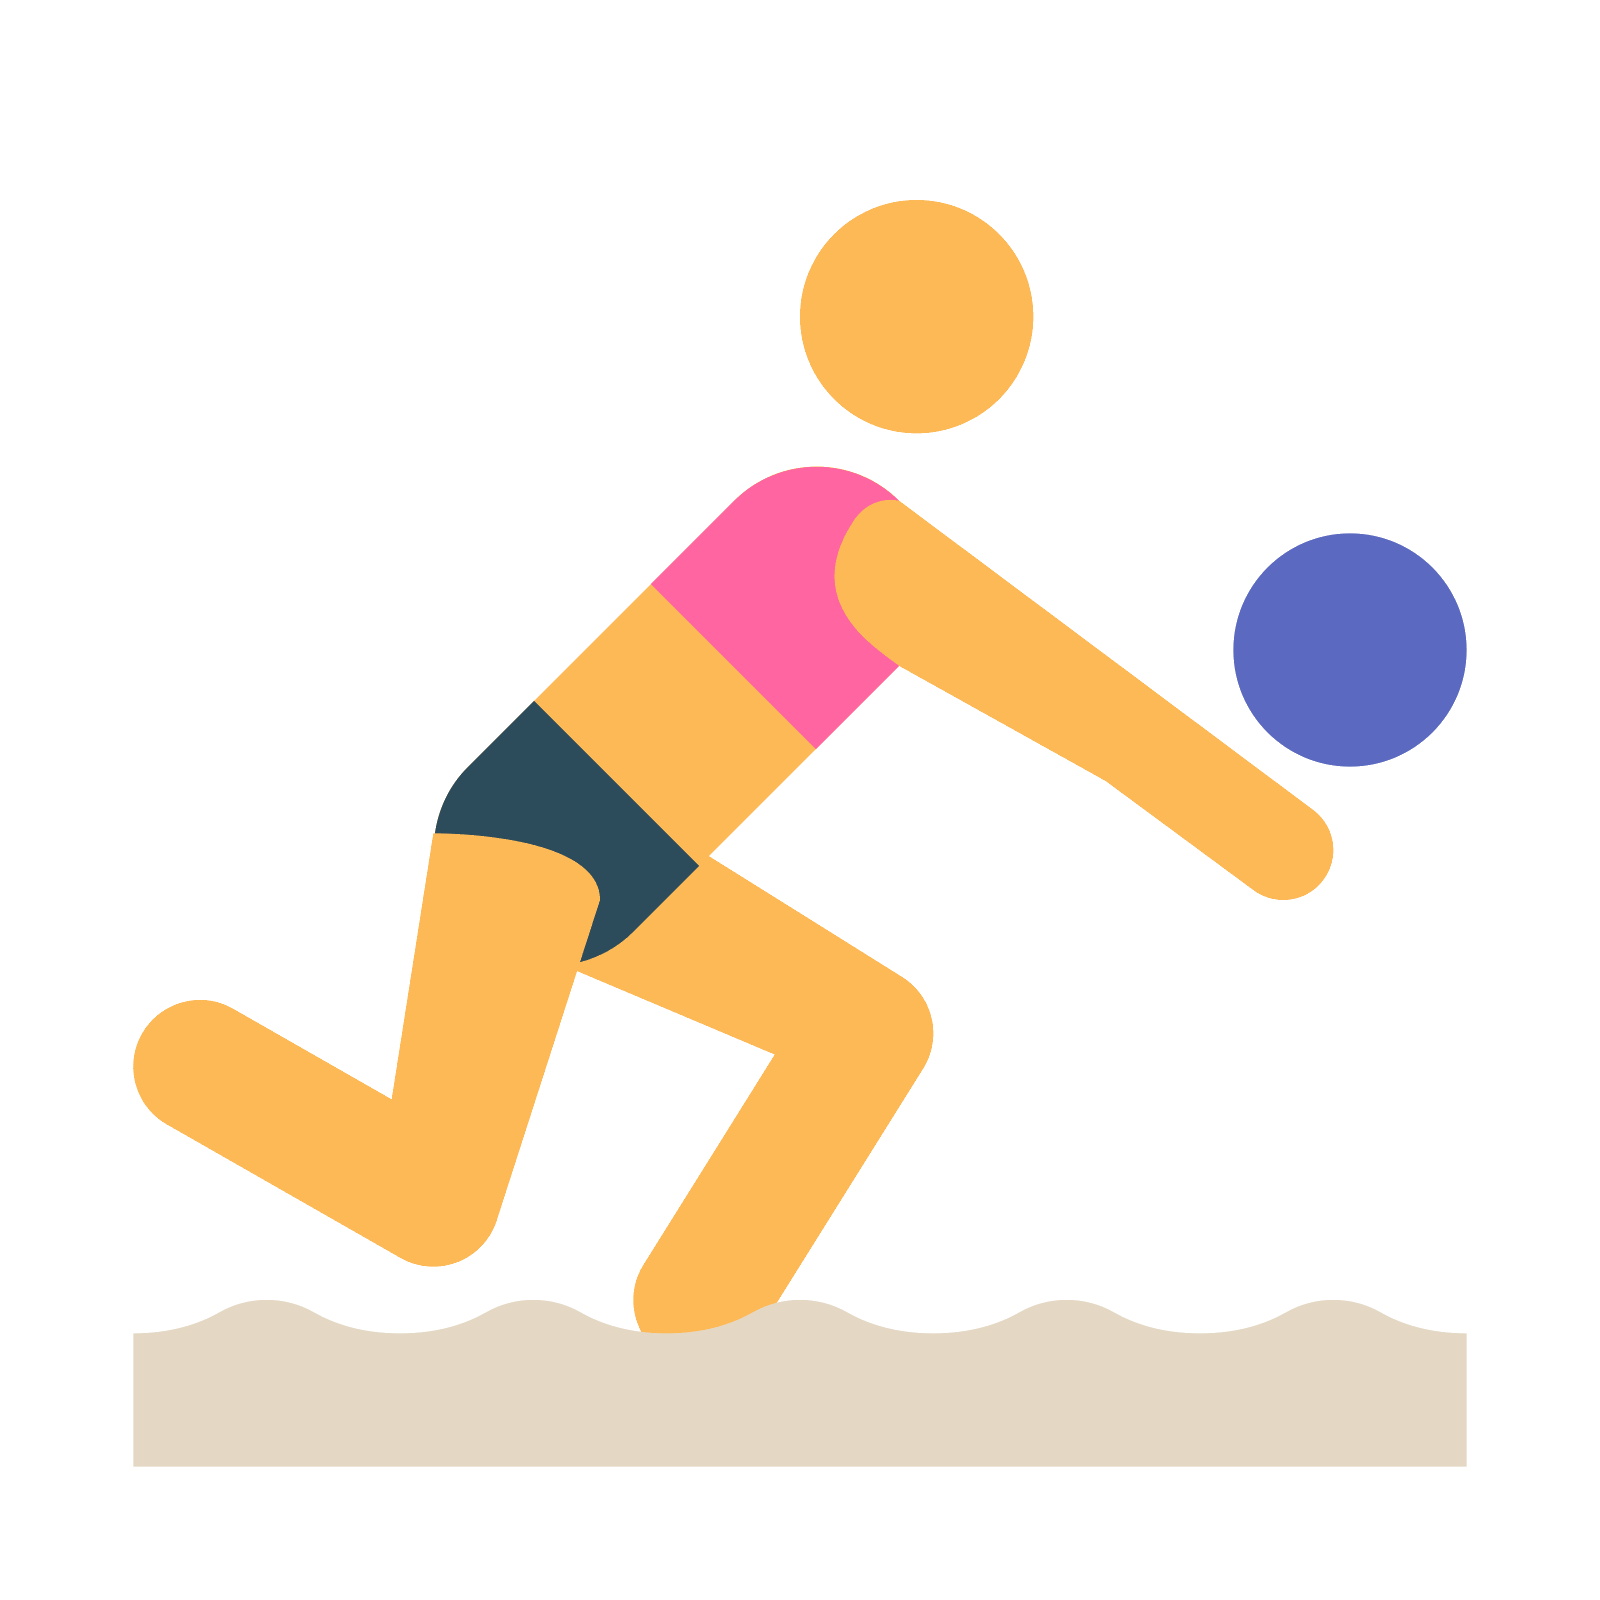 Color clipart volleyball player. Icon beach free download